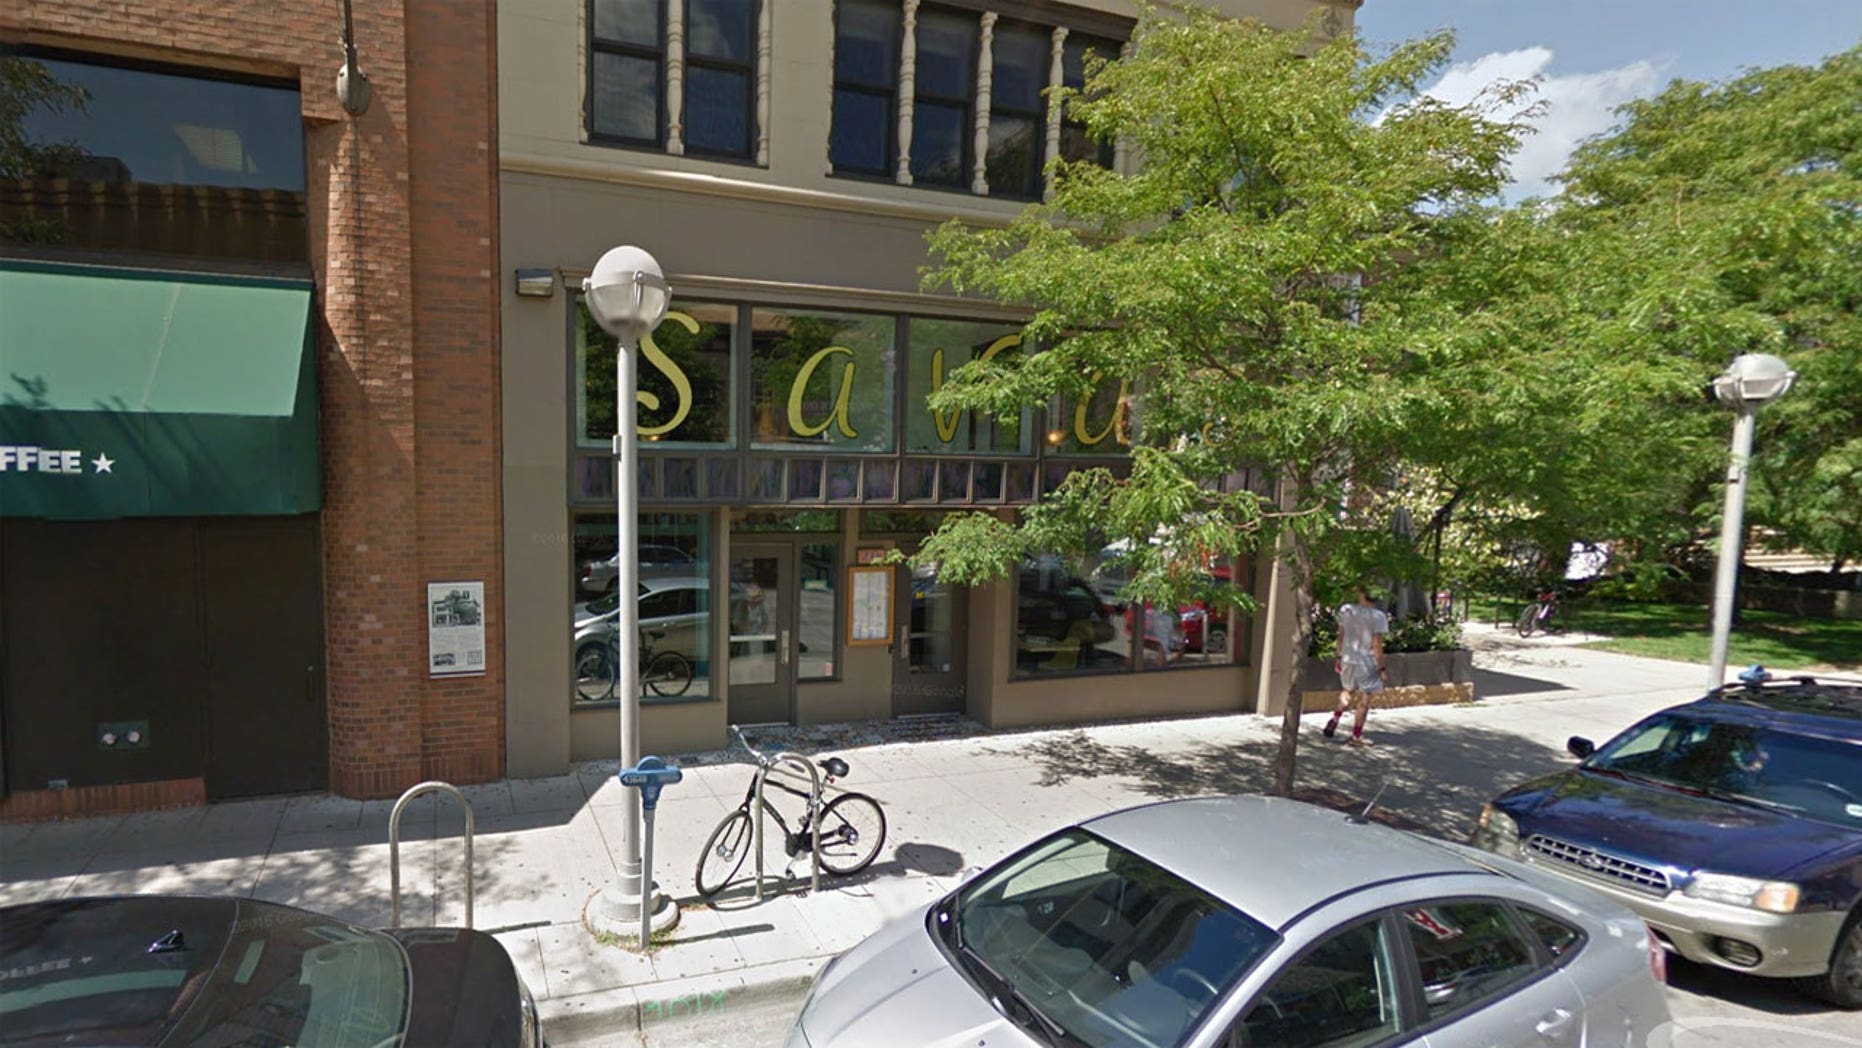 Sava's restaurant in Ann Arbor was raided by Immigration officials on Wednesday morning.